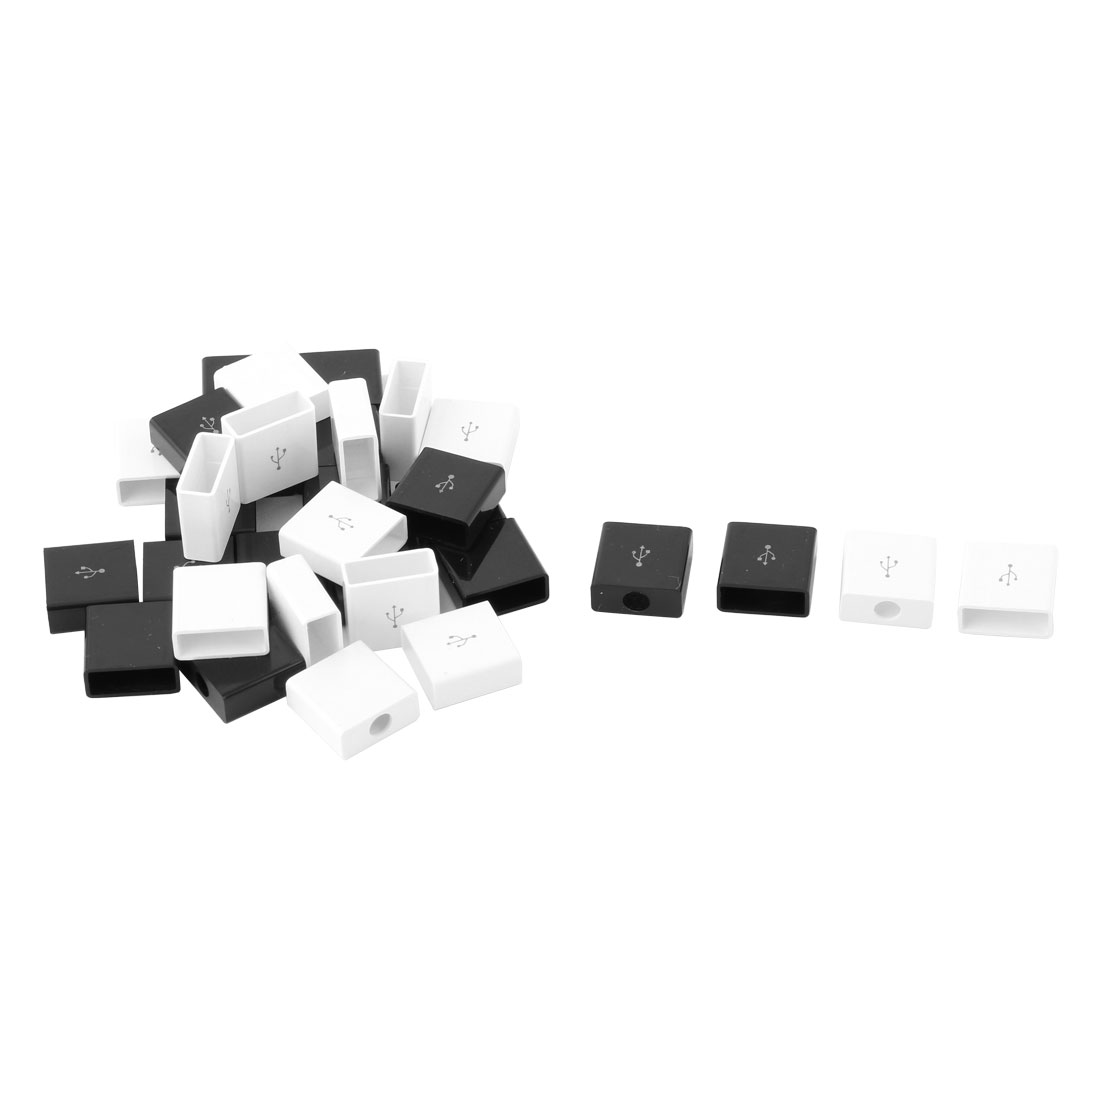 Plastic Rectangle Cover USB Connector Port Shell Parts Black and White 13x13x5mm 30pcs